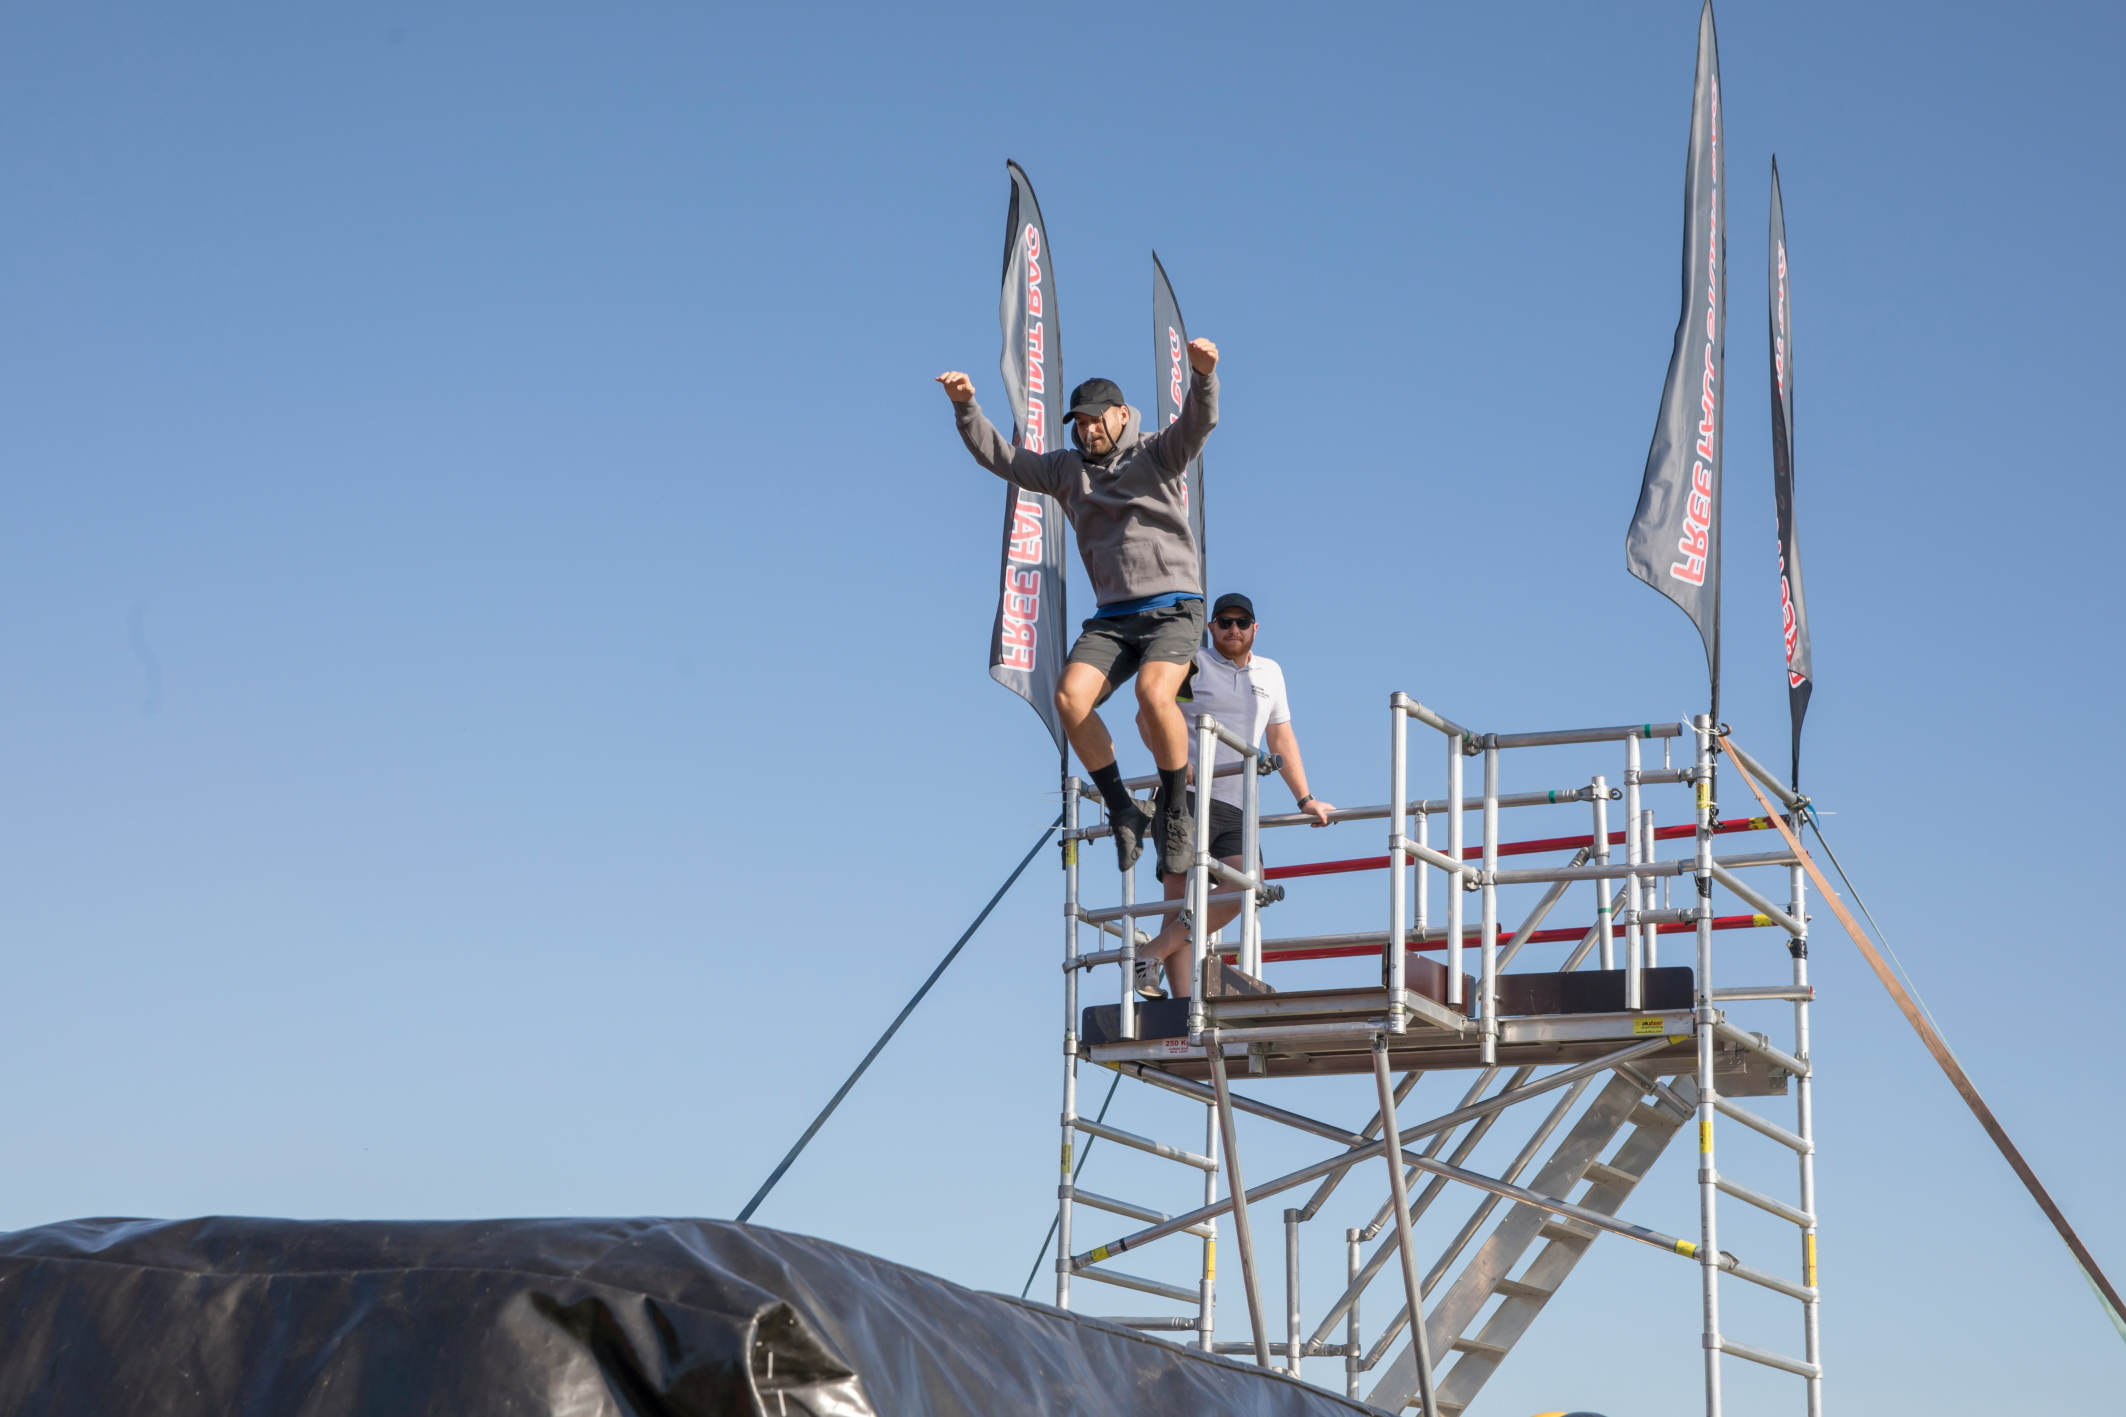 A man leaps from a very high scaffolding tower onto a giant inflatable stunt bag below